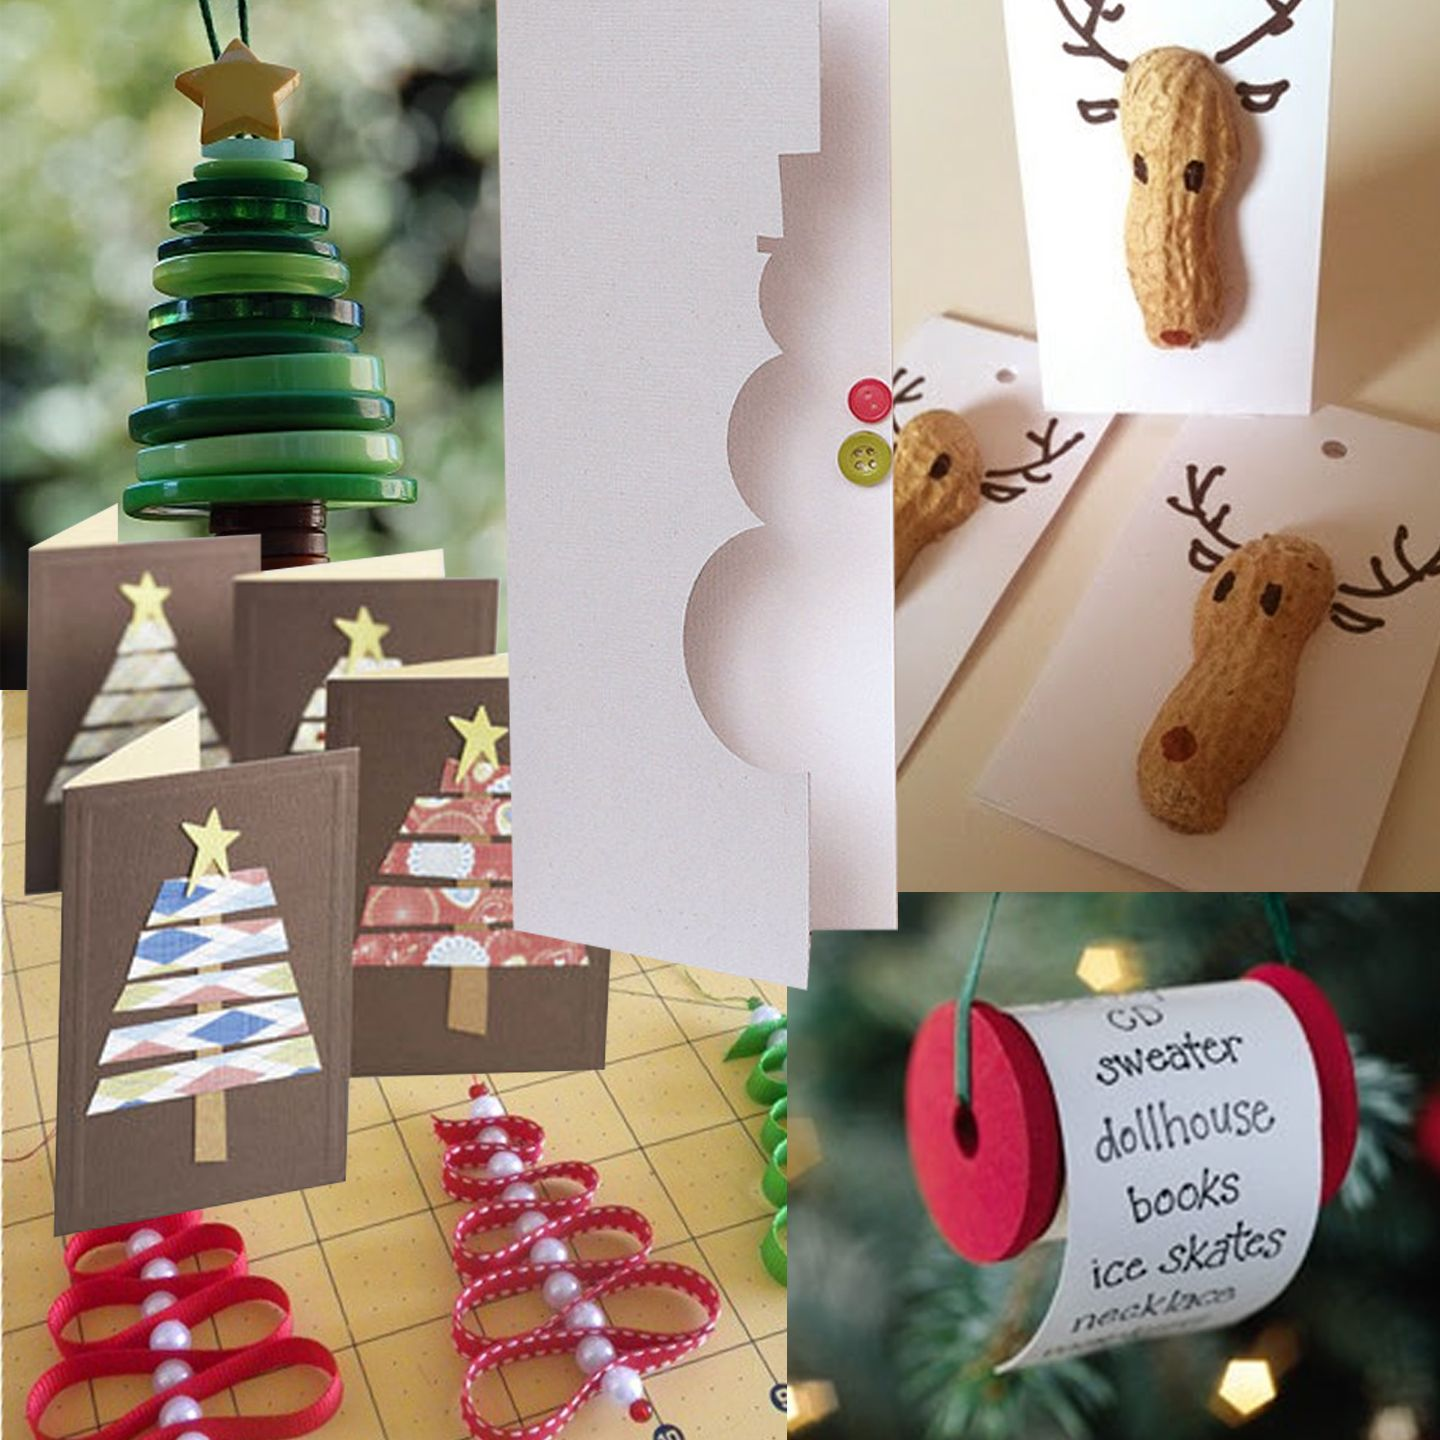 Handmade christmas tree ornaments ideas - Christmas Decorations Diy Ideas Plain Ideas 33 On Home Decor Ideas